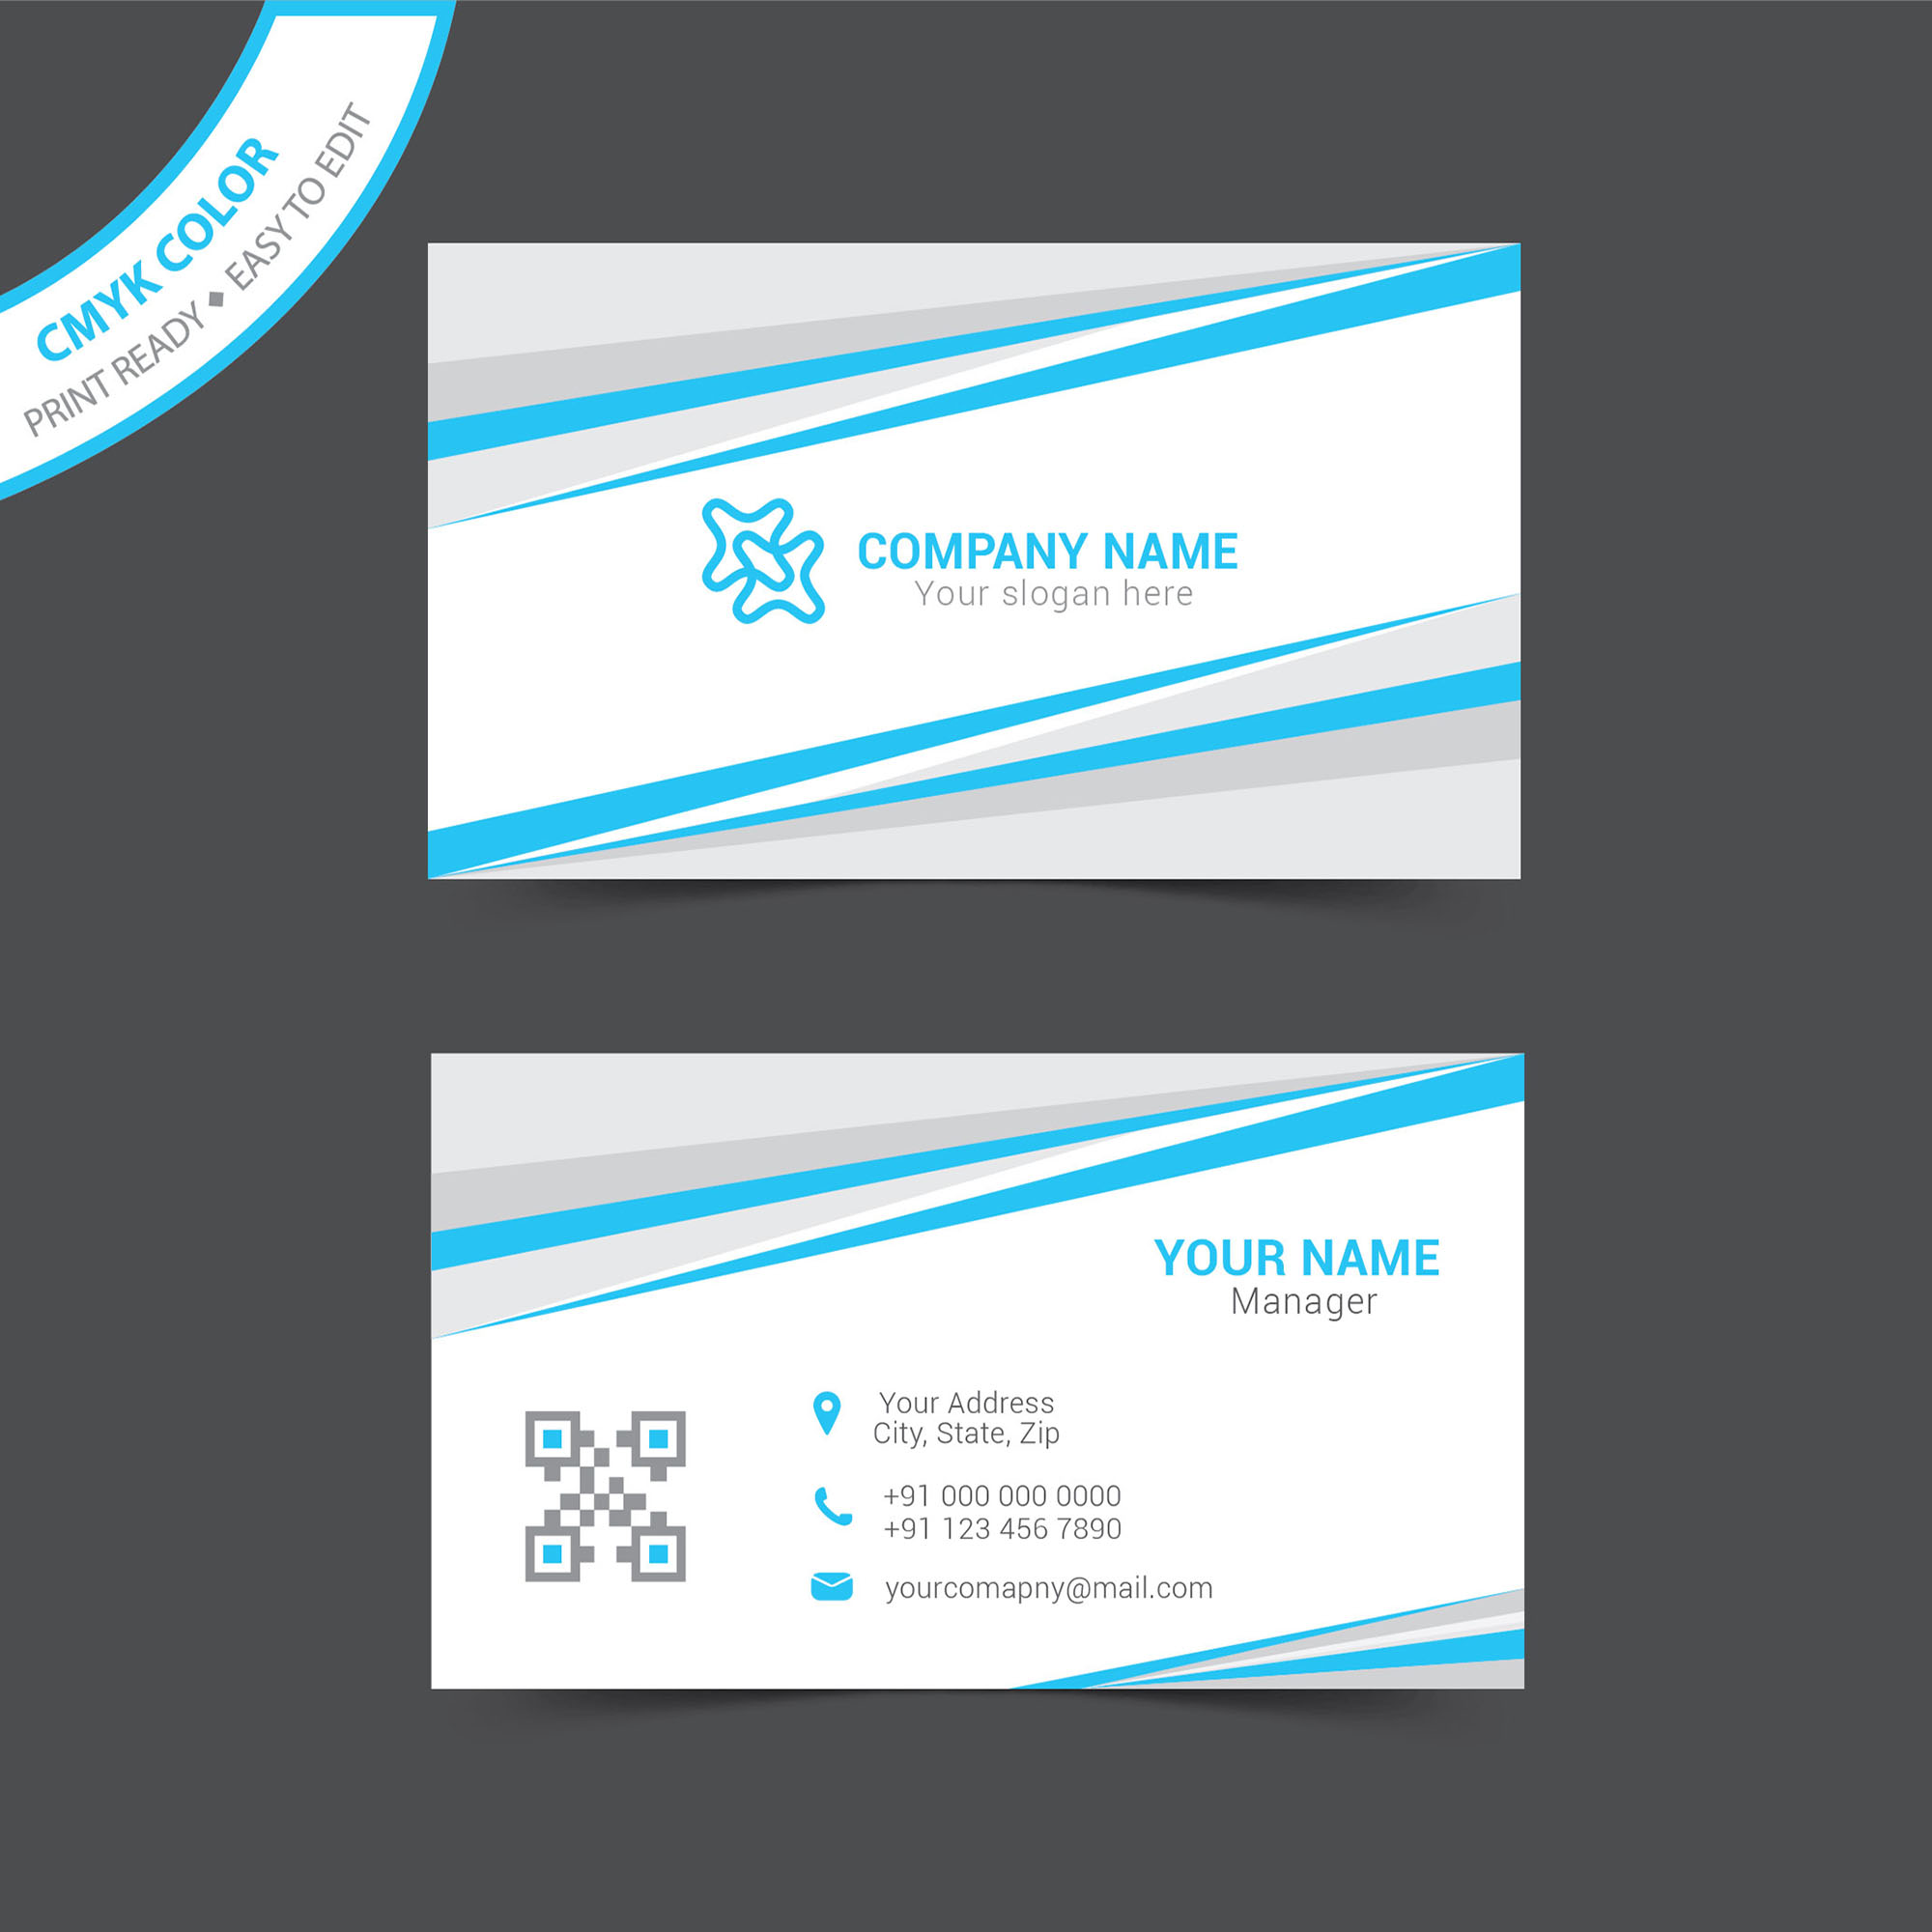 Simple business card template free download wisxi business card business cards business card design business card template design templates wajeb